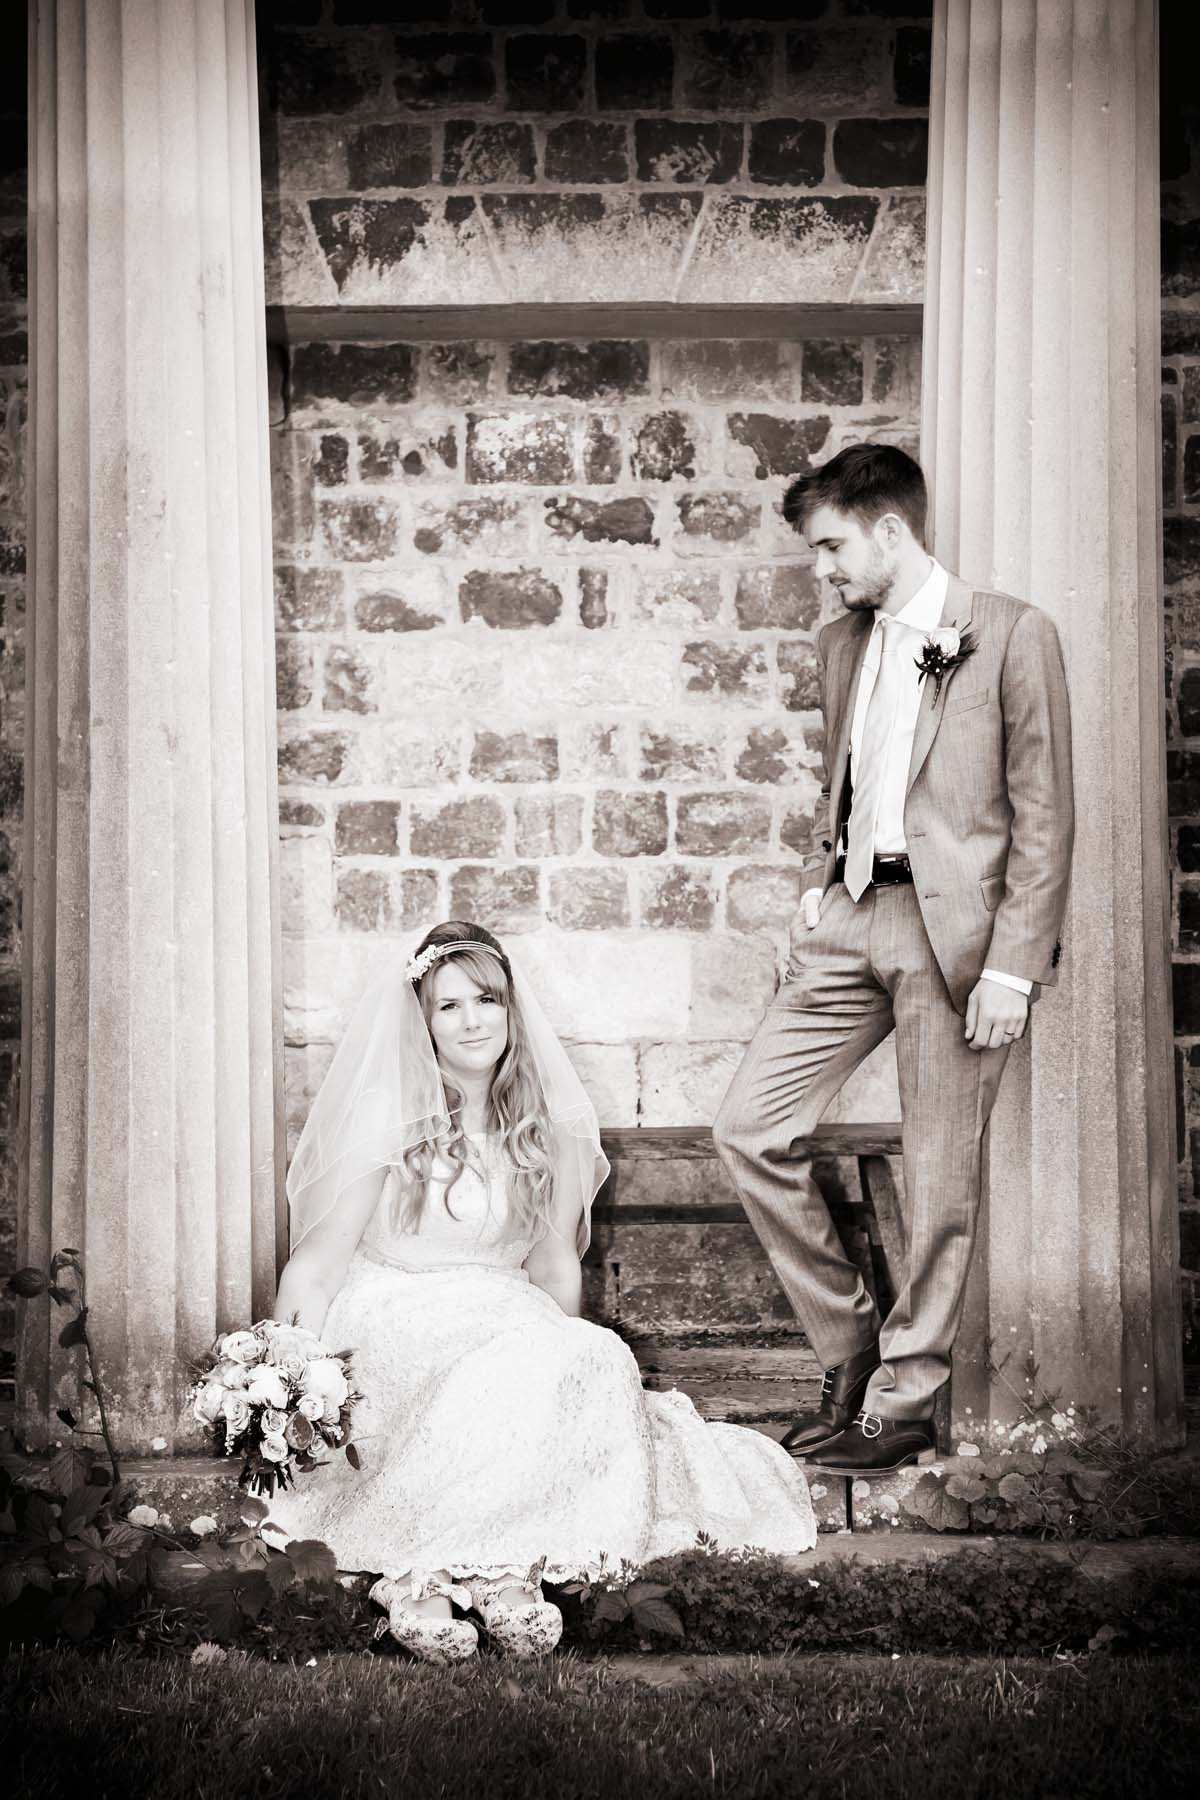 Sussex & Surrey Wedding Photographer - Bride & Groom (2)